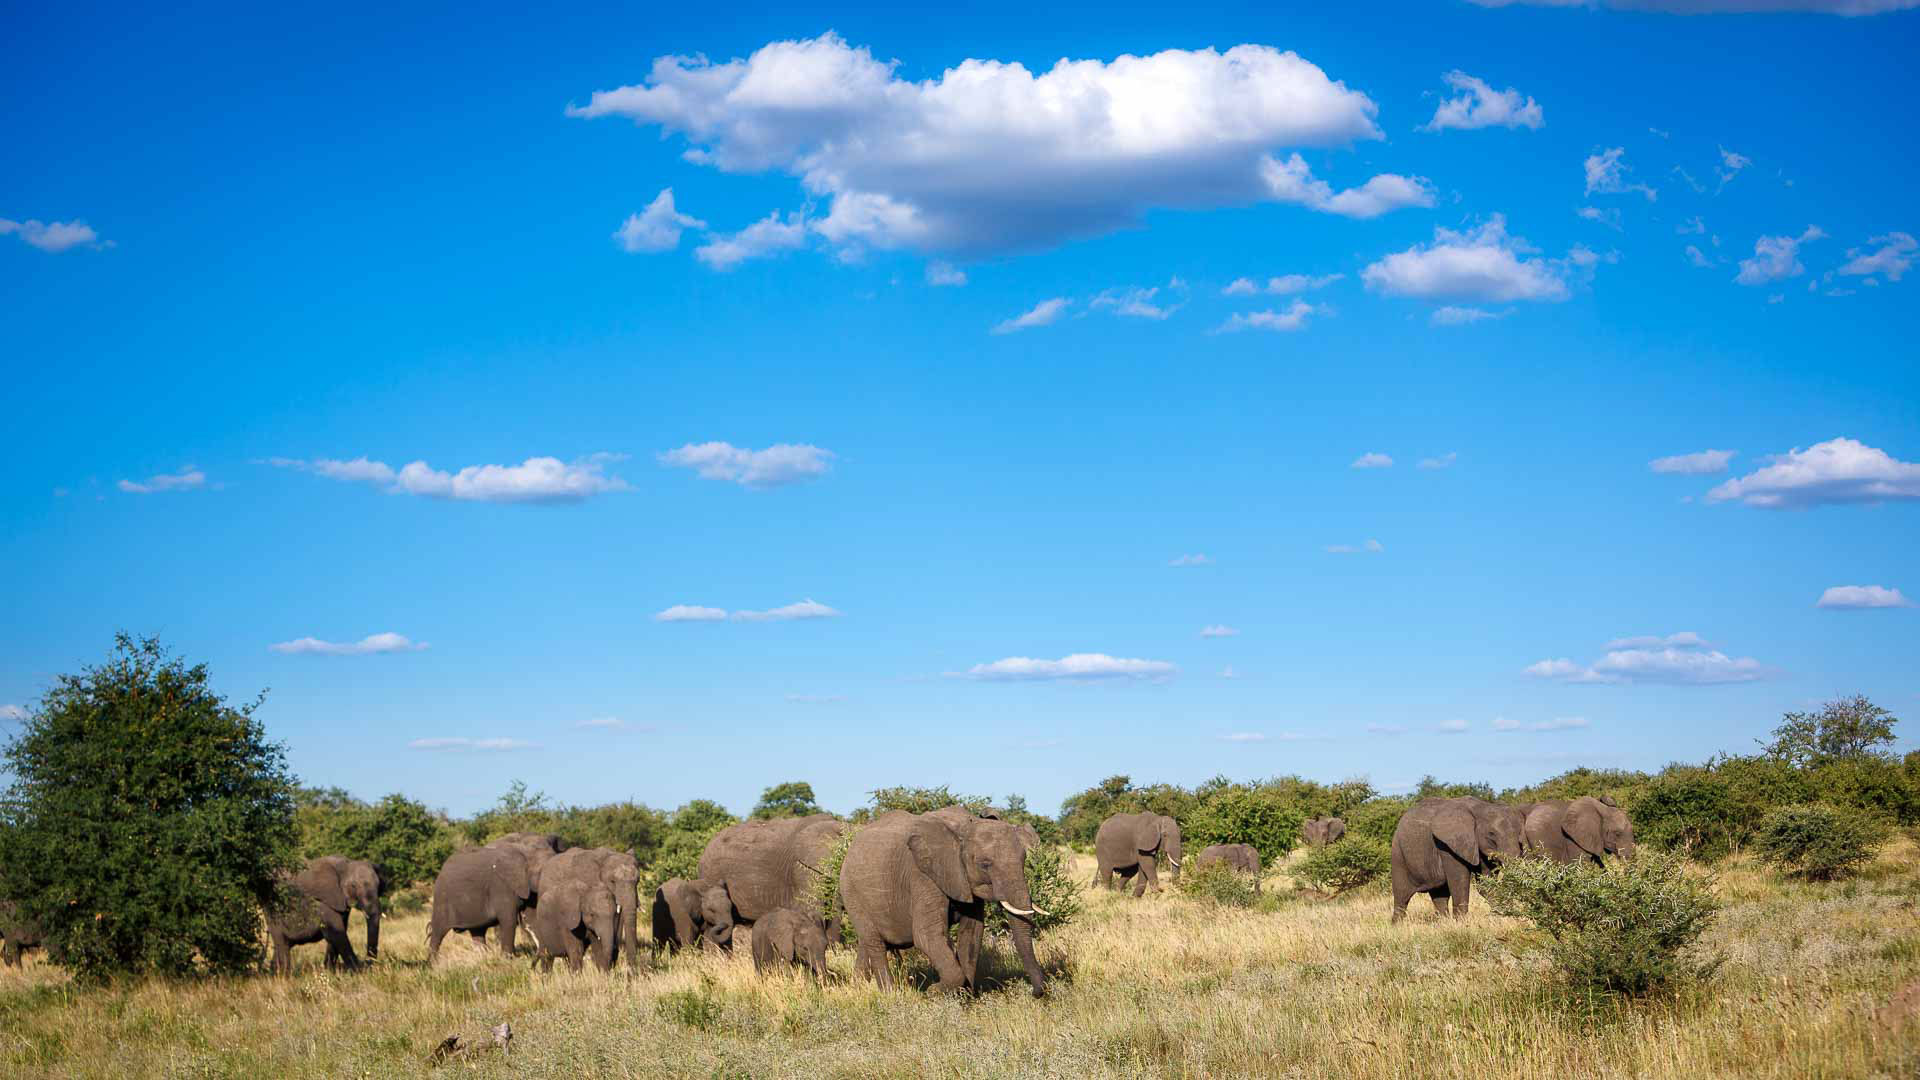 Tanda Tula - elephant herd in the Greater Kruger